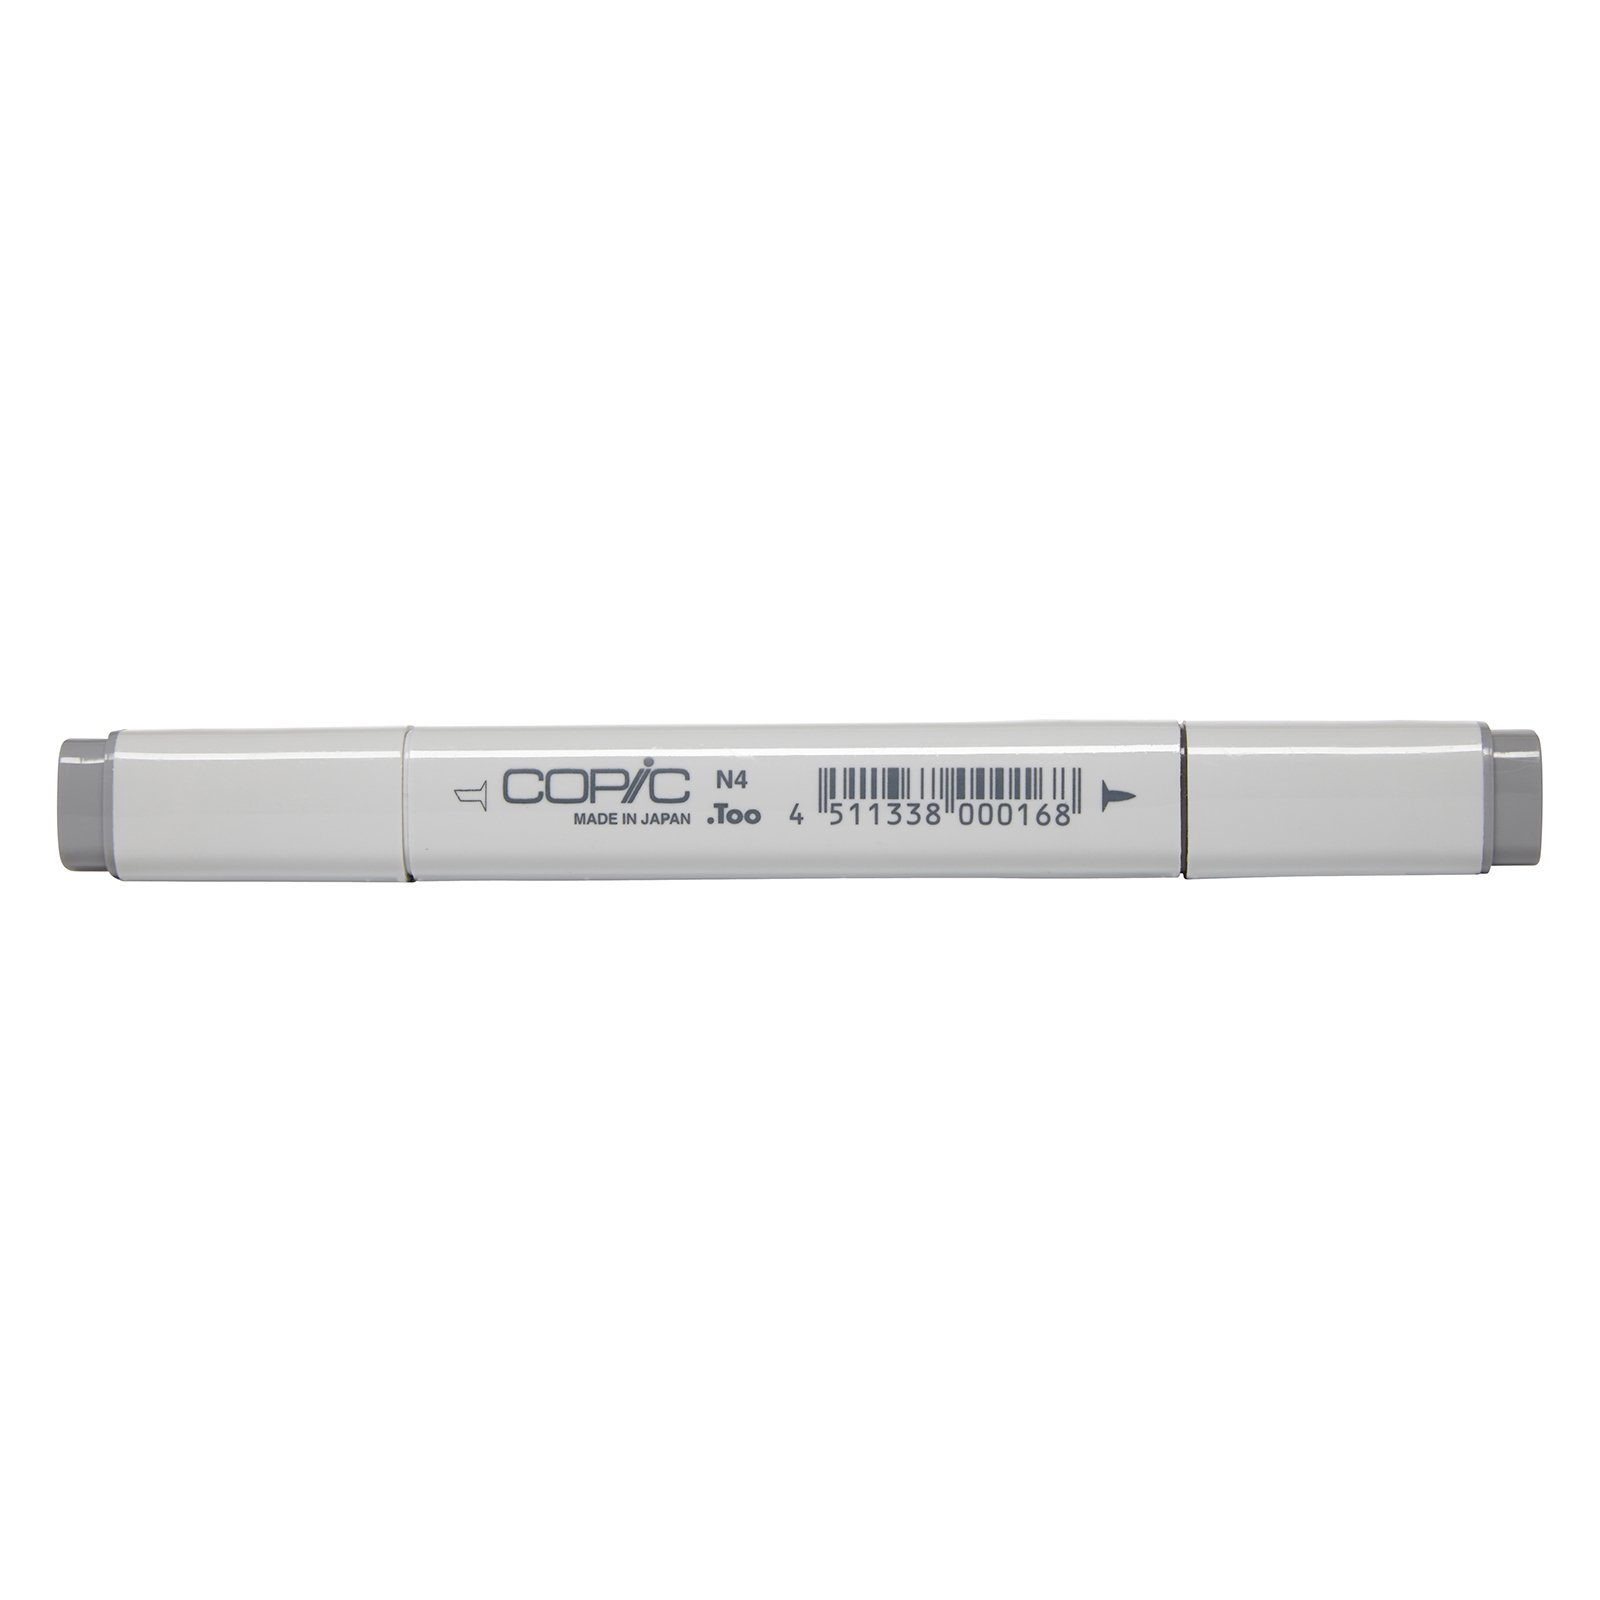 Copic Marker with Replaceable Nib, N4-Copic, Neutral Gray